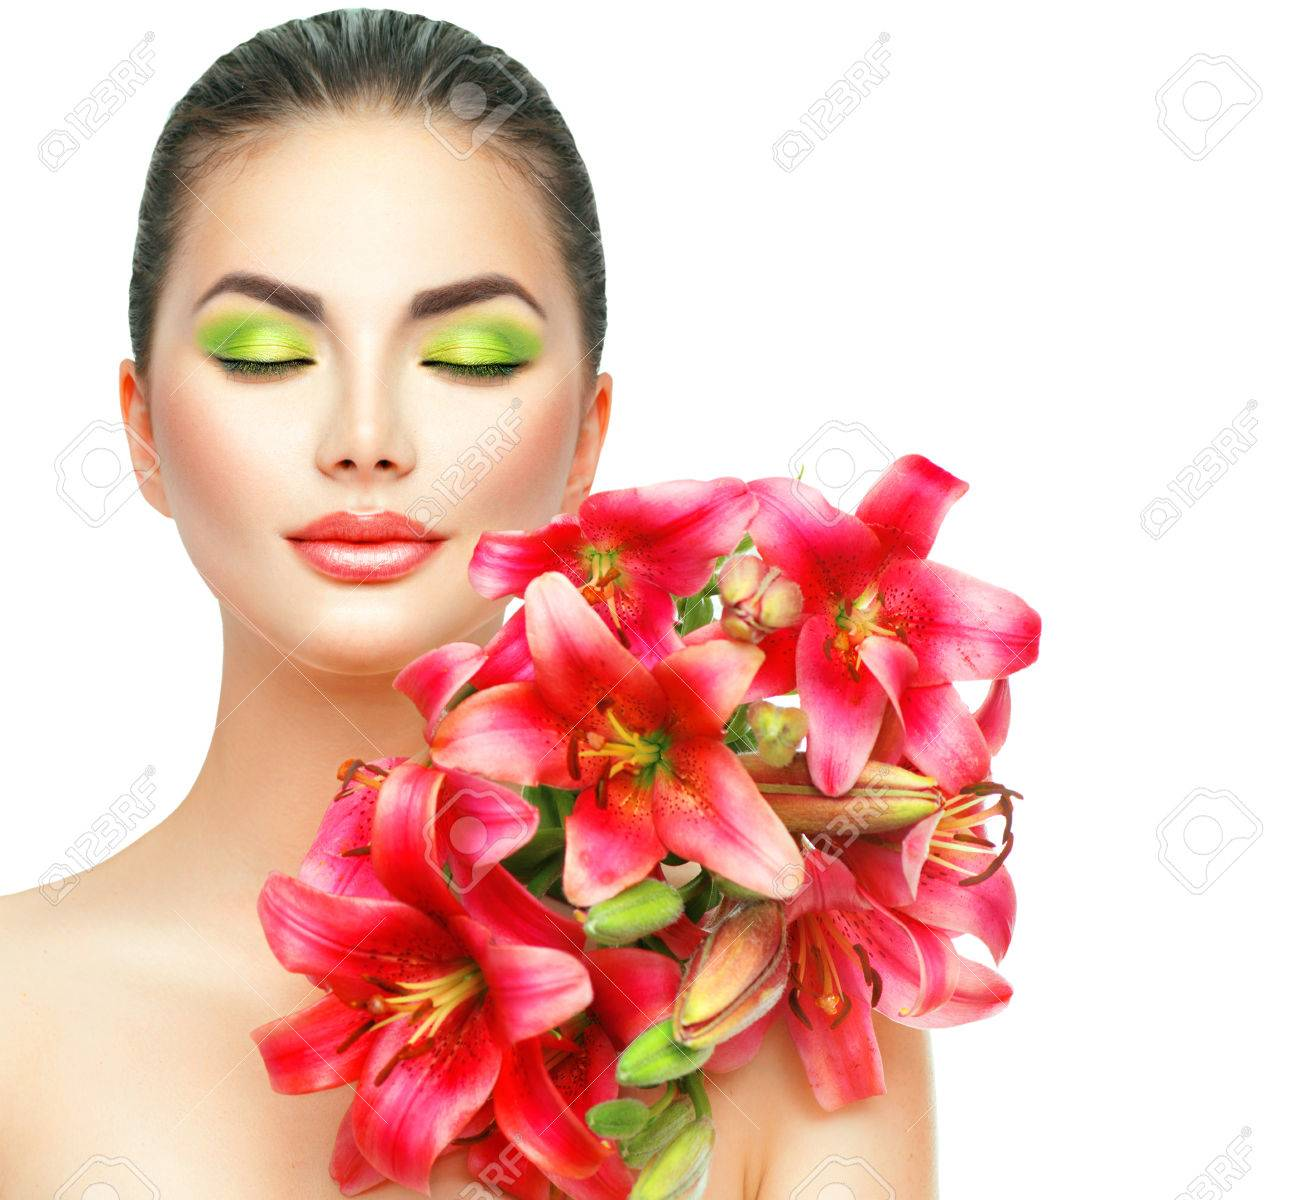 Uncategorized Model Flower beauty girl with lilly flowers bouquet beautiful spa model blooming pink lily stock